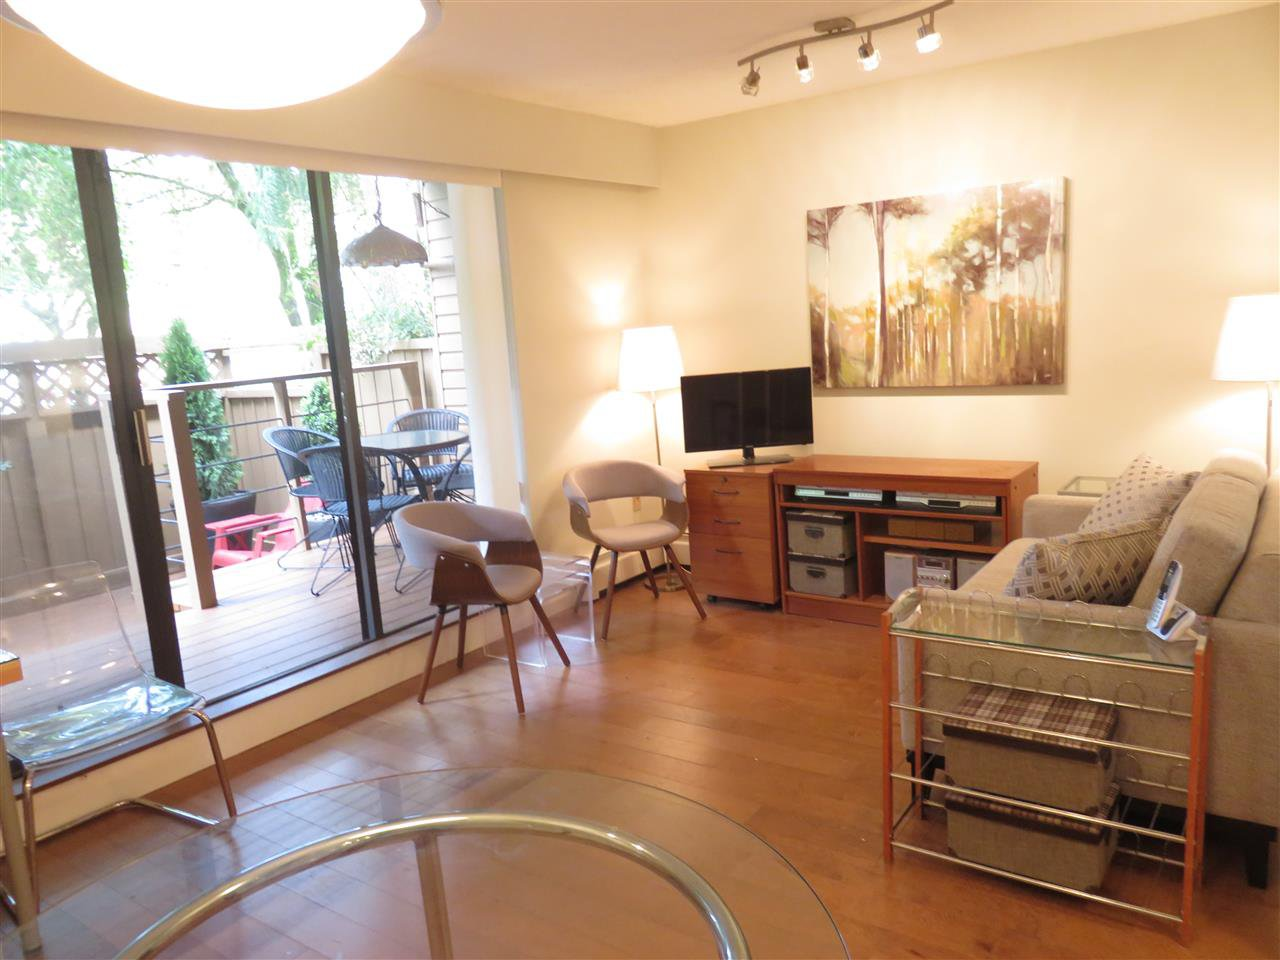 """Photo 3: Photos: 101 1930 W 3RD Avenue in Vancouver: Kitsilano Condo for sale in """"WESTVIEW"""" (Vancouver West)  : MLS®# R2169188"""